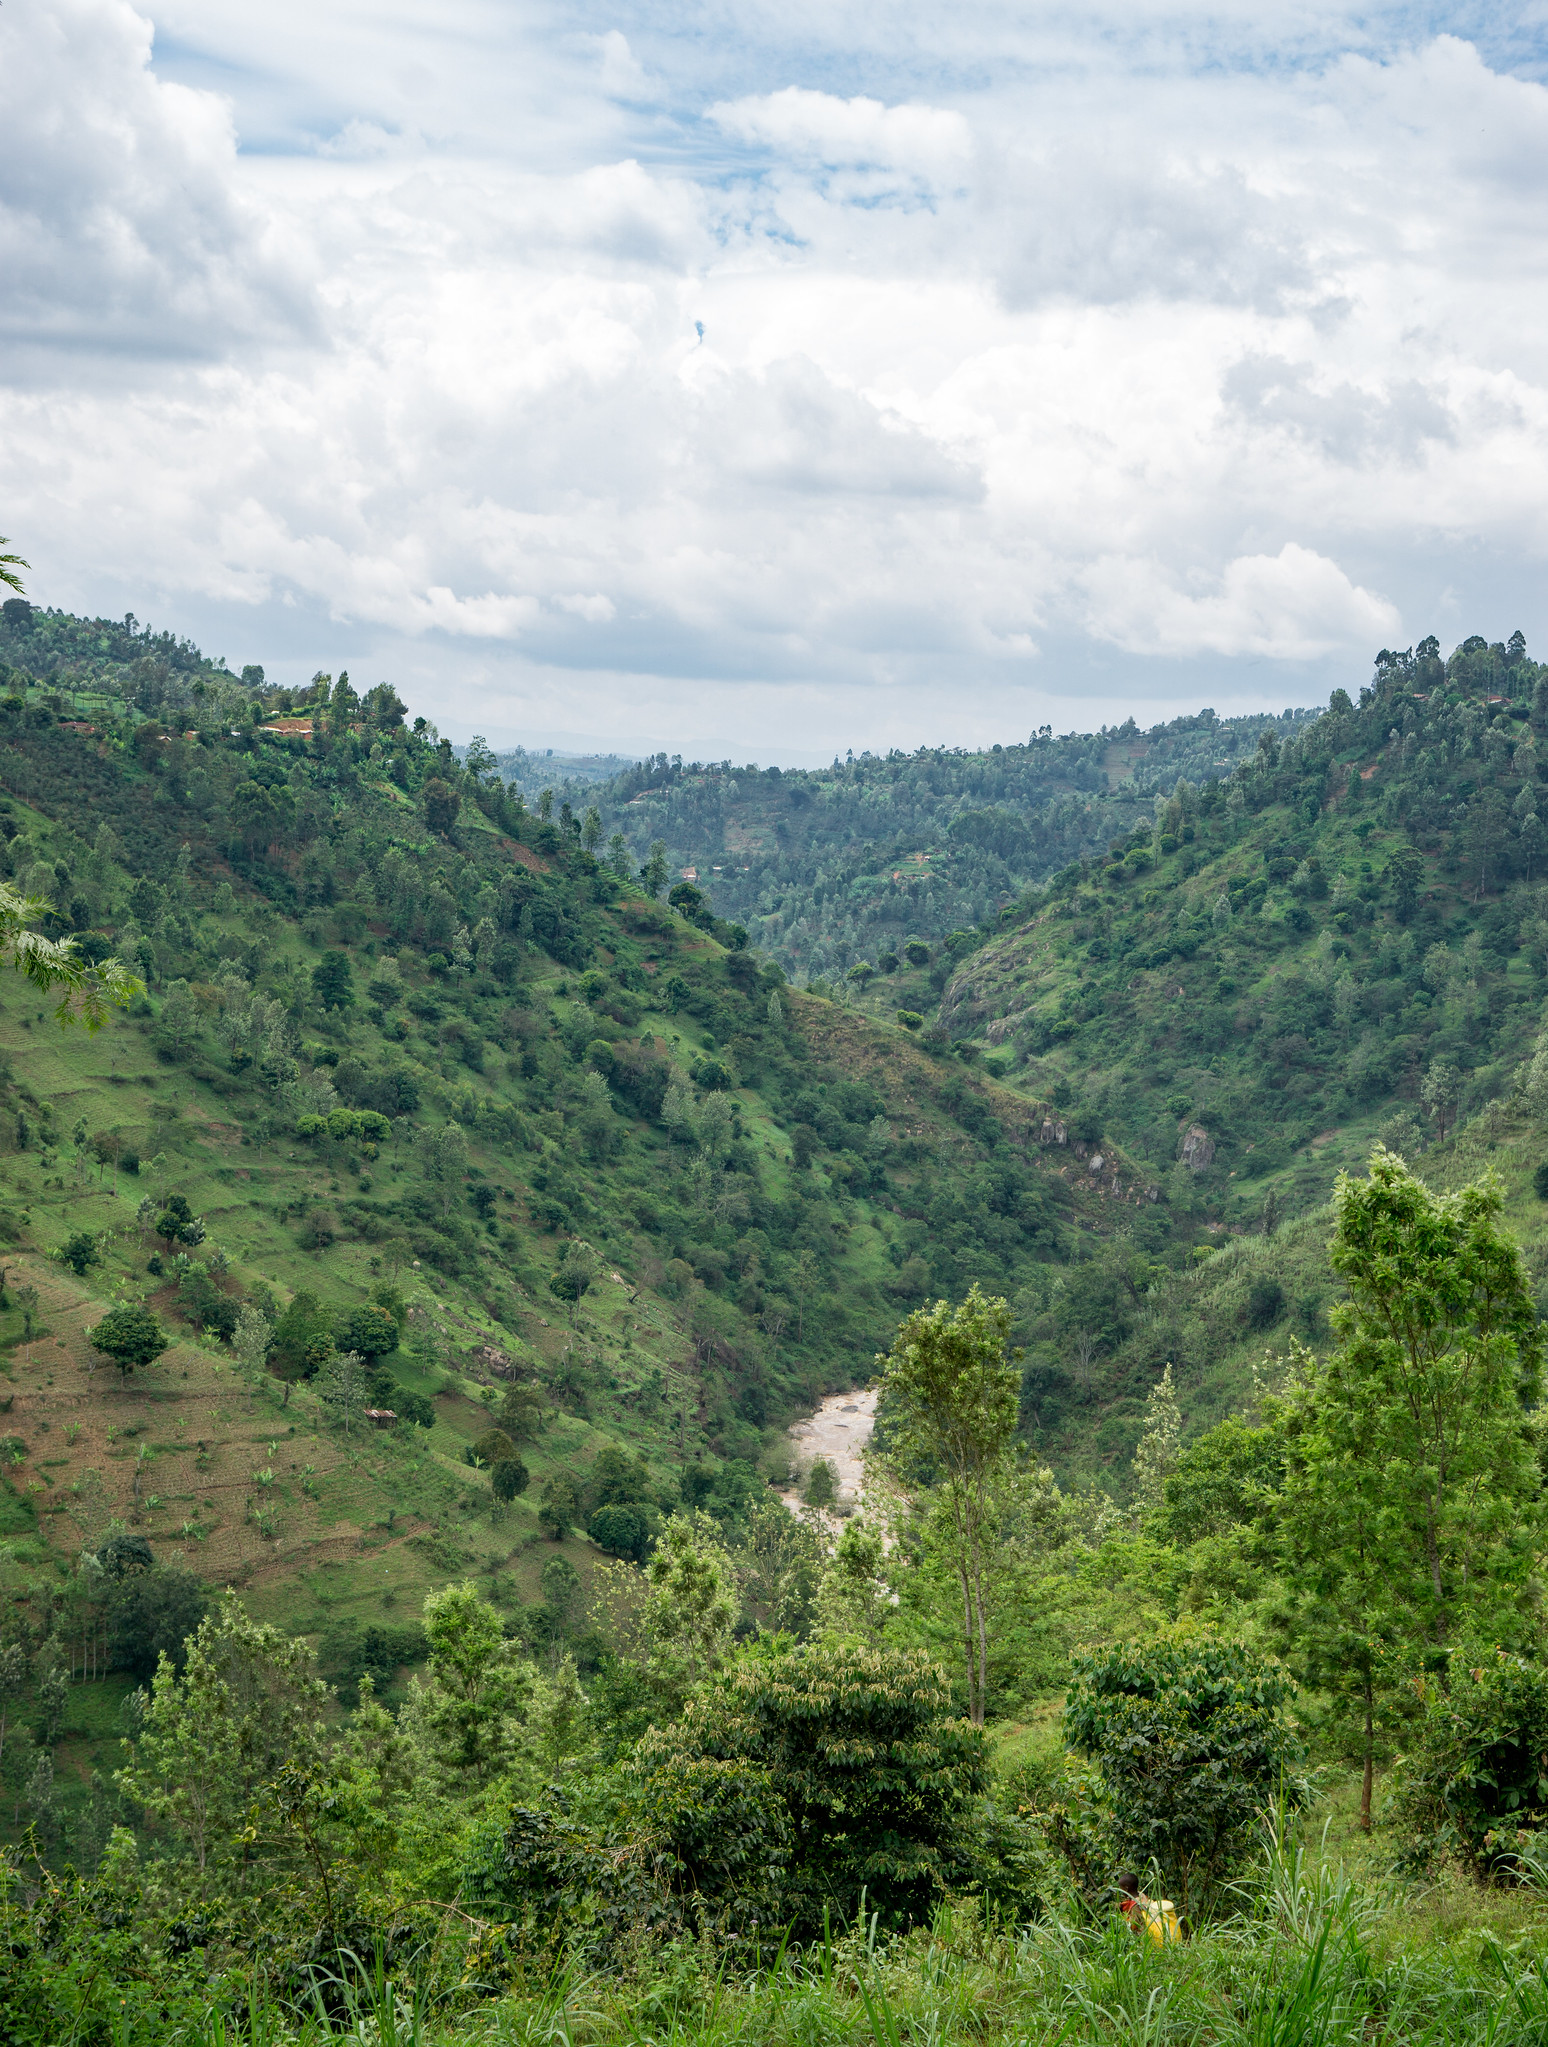 Stunning views all around the hilly Nyeri region